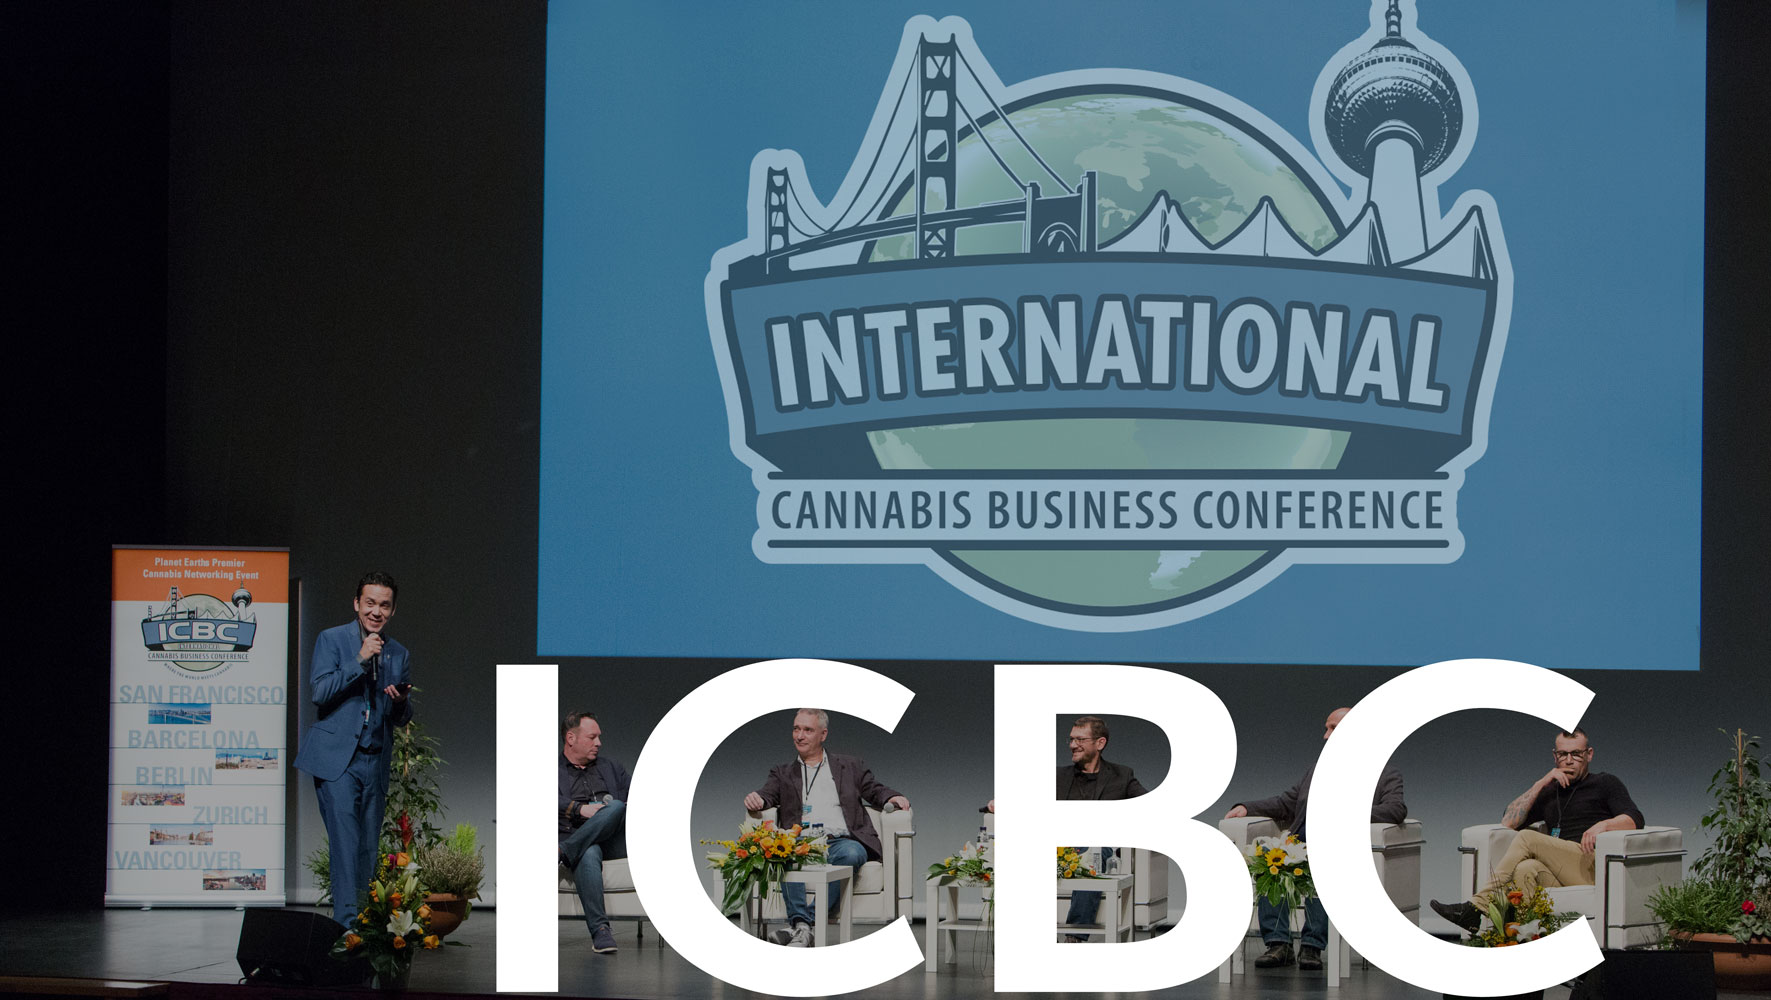 Home International Cannabis Business Conference Stage image